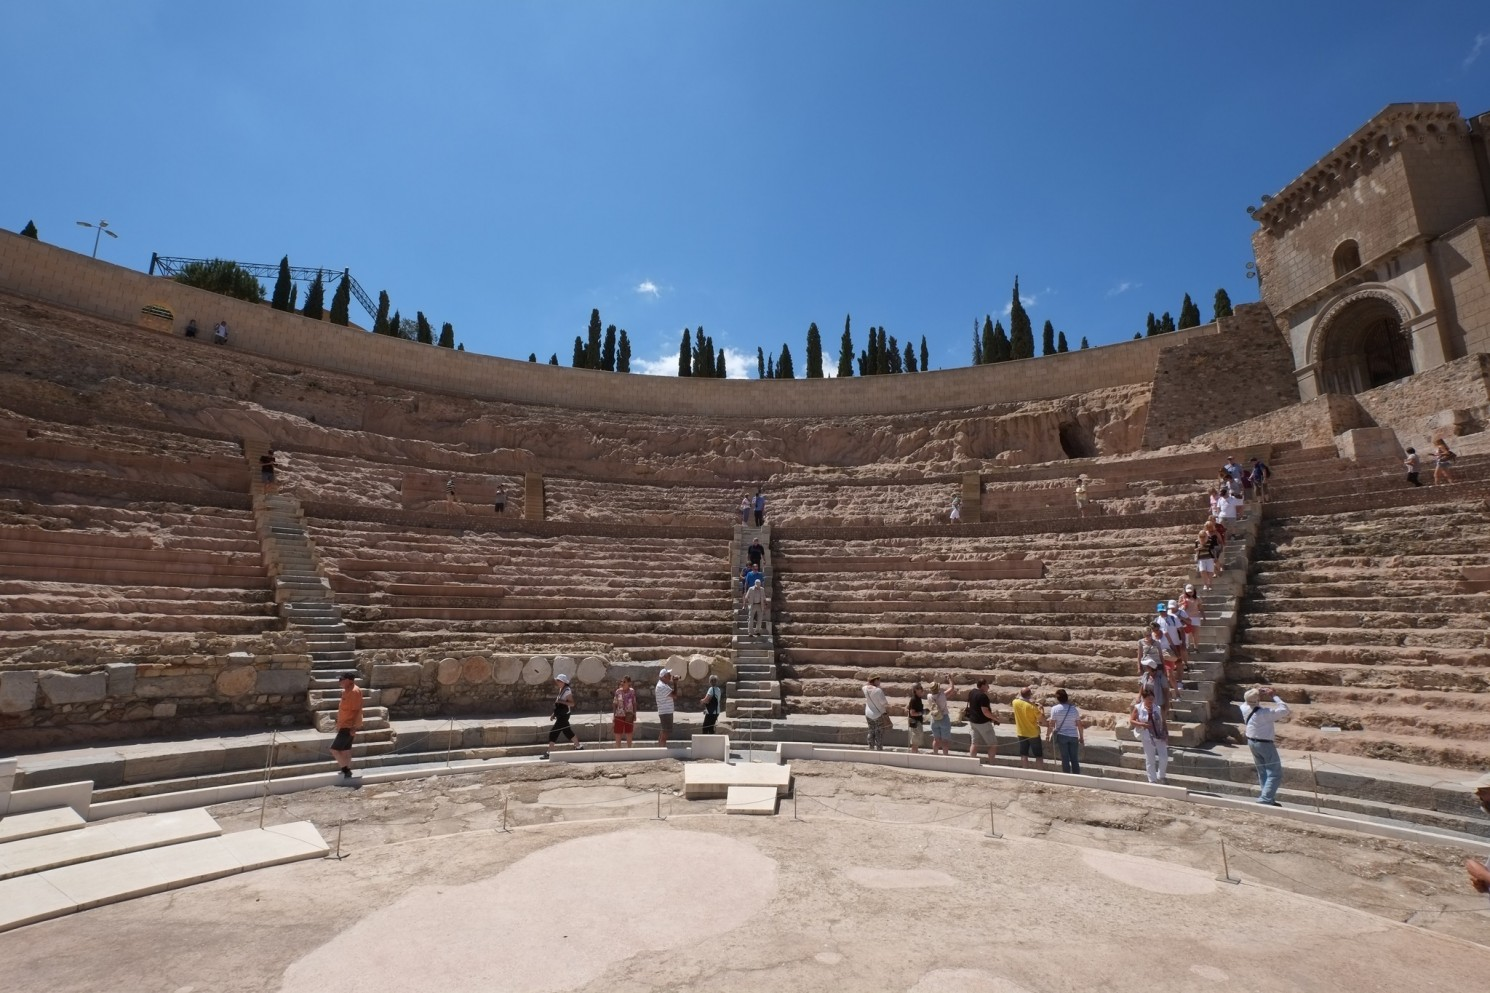 travel in spain holidays in costa c atilde iexcl lida mallory on travel r amphitheatre in cartagena costa catildeiexcllida in murcia on the mediterranean coast of spain on